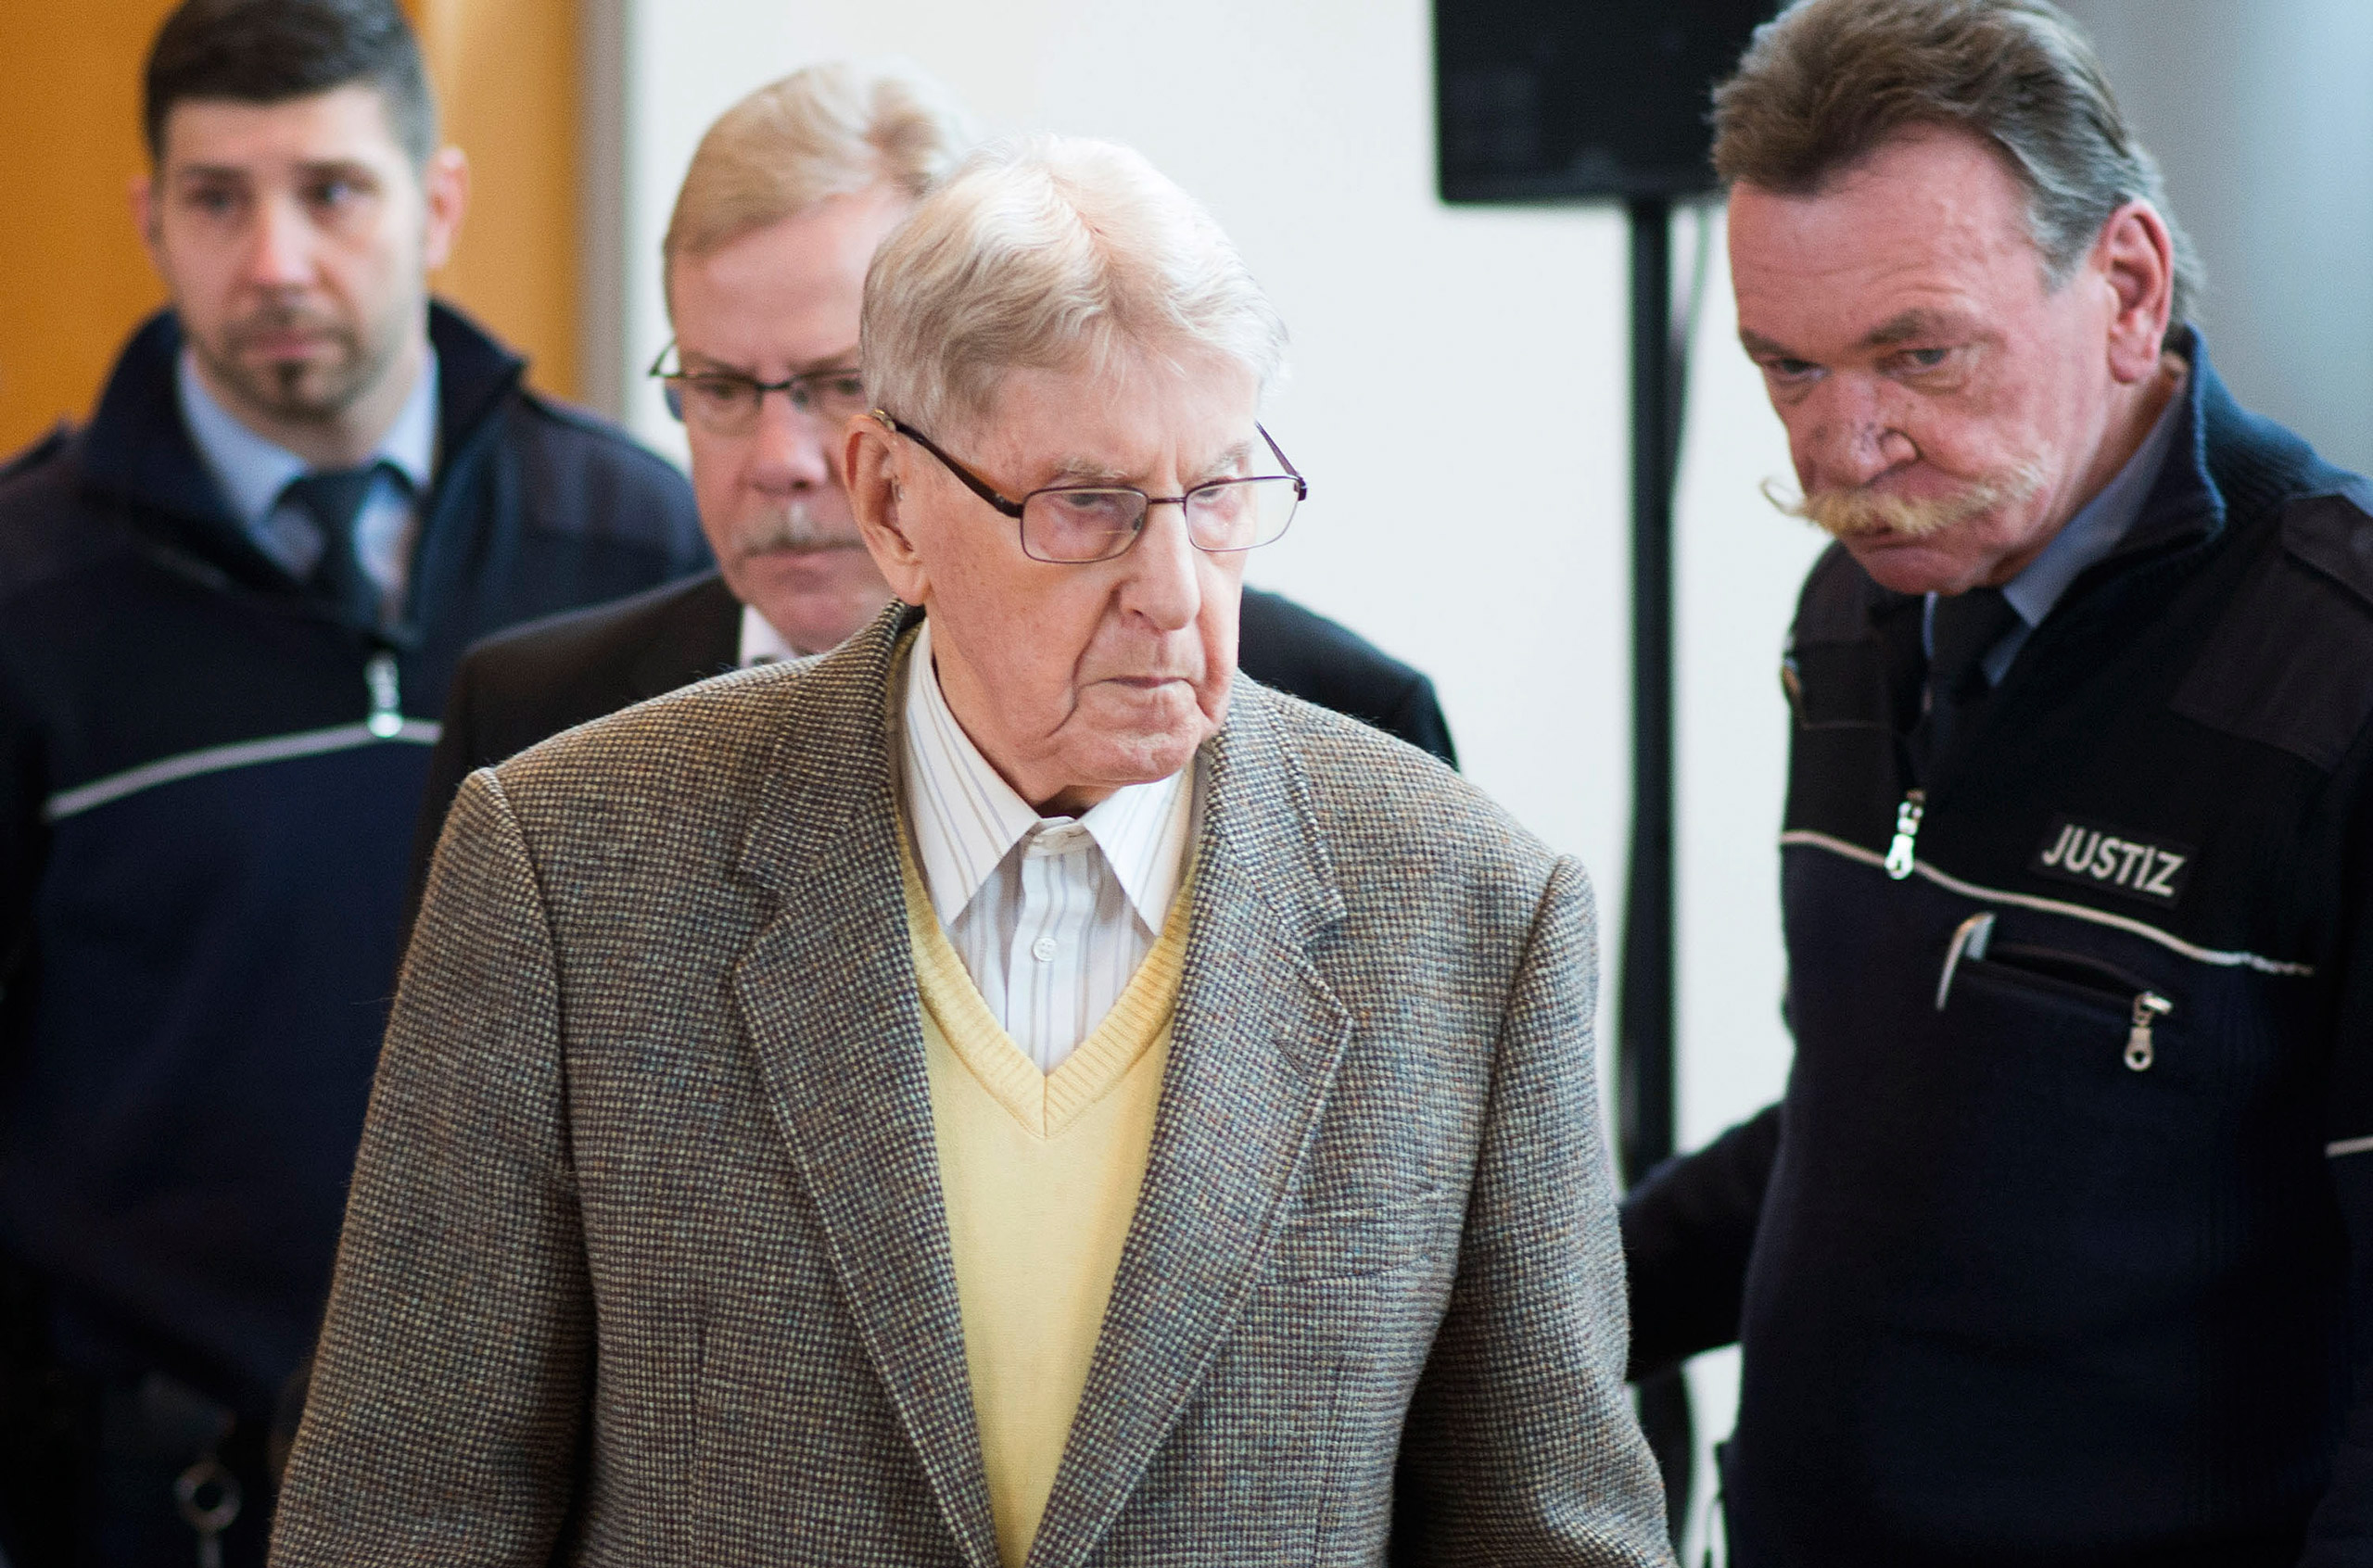 Reinhold Hanning, a 94-year-old former guard at Auschwitz, arrives in the courtroom before his trial in Detmold, Germany, on Feb. 12, 2016.